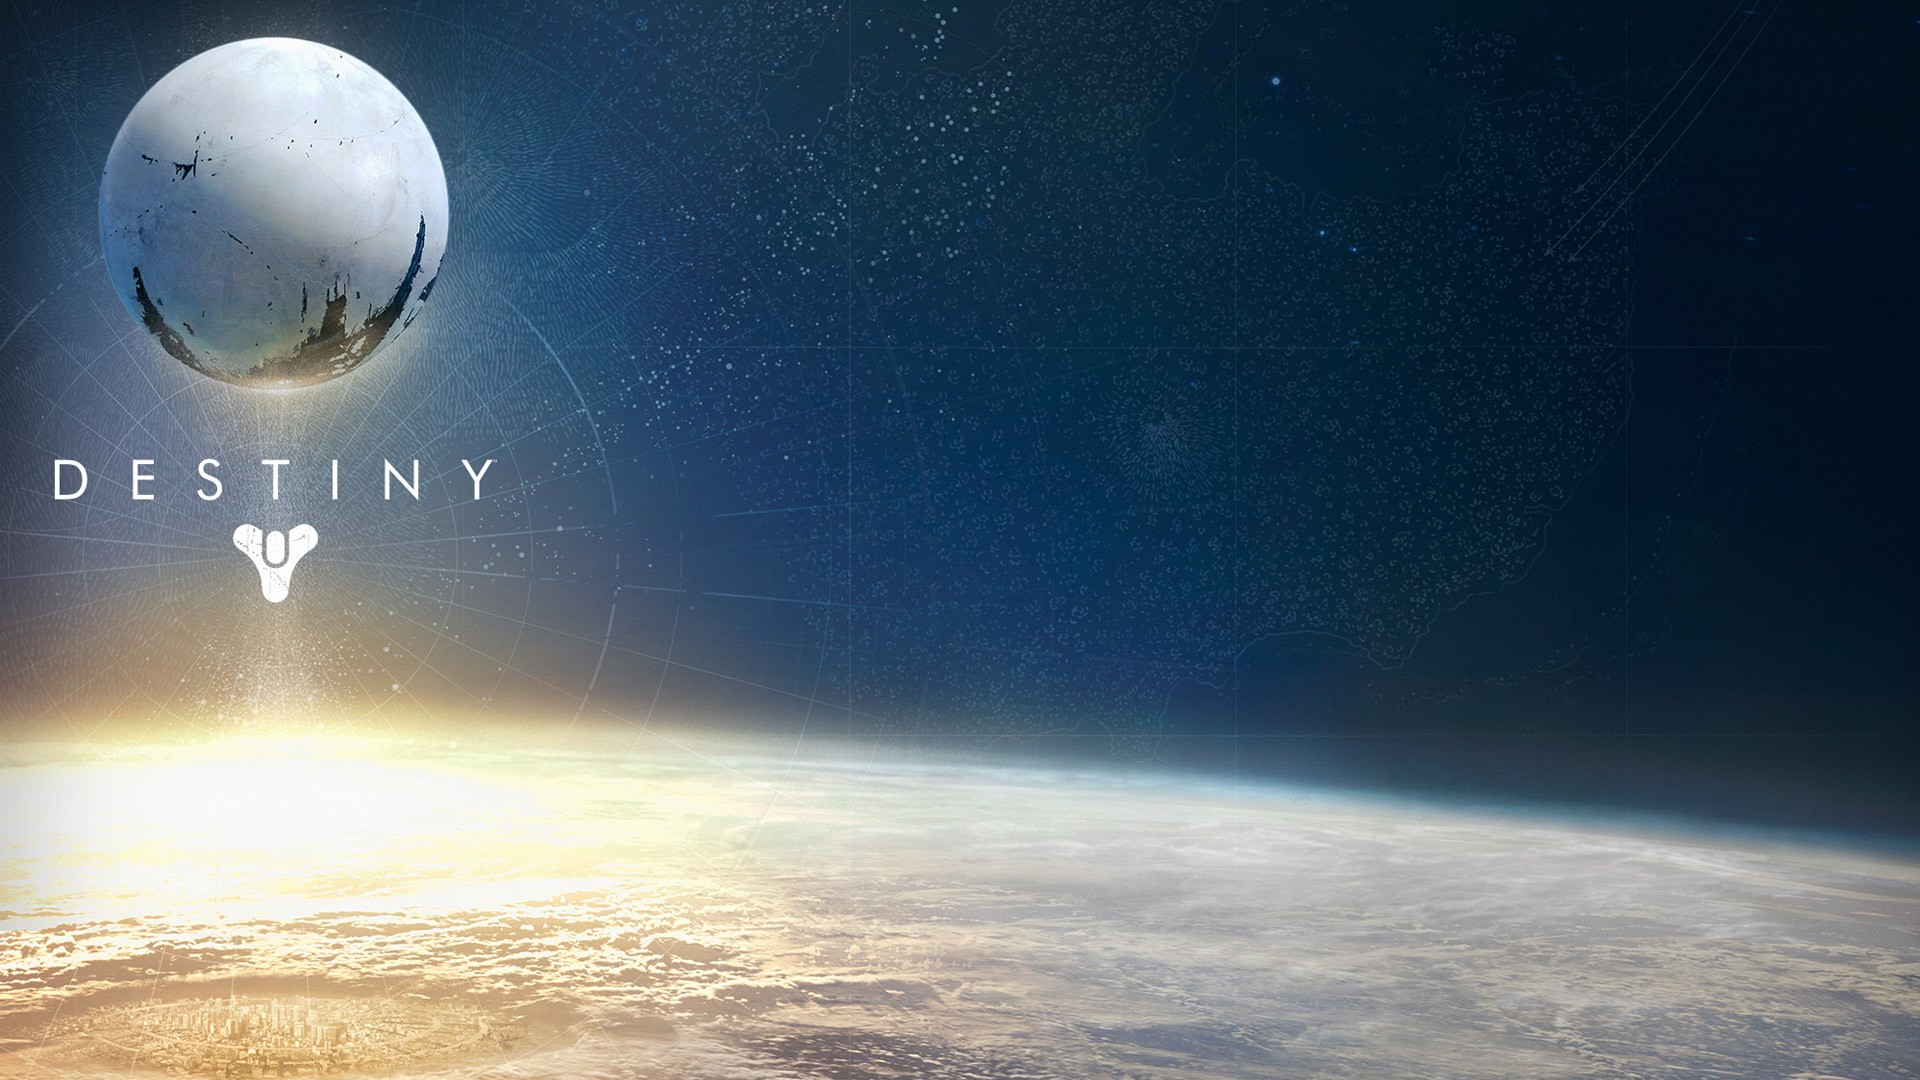 Logo Destiny Backgrounds HD Background Wallpapers Amazing 1920x1080